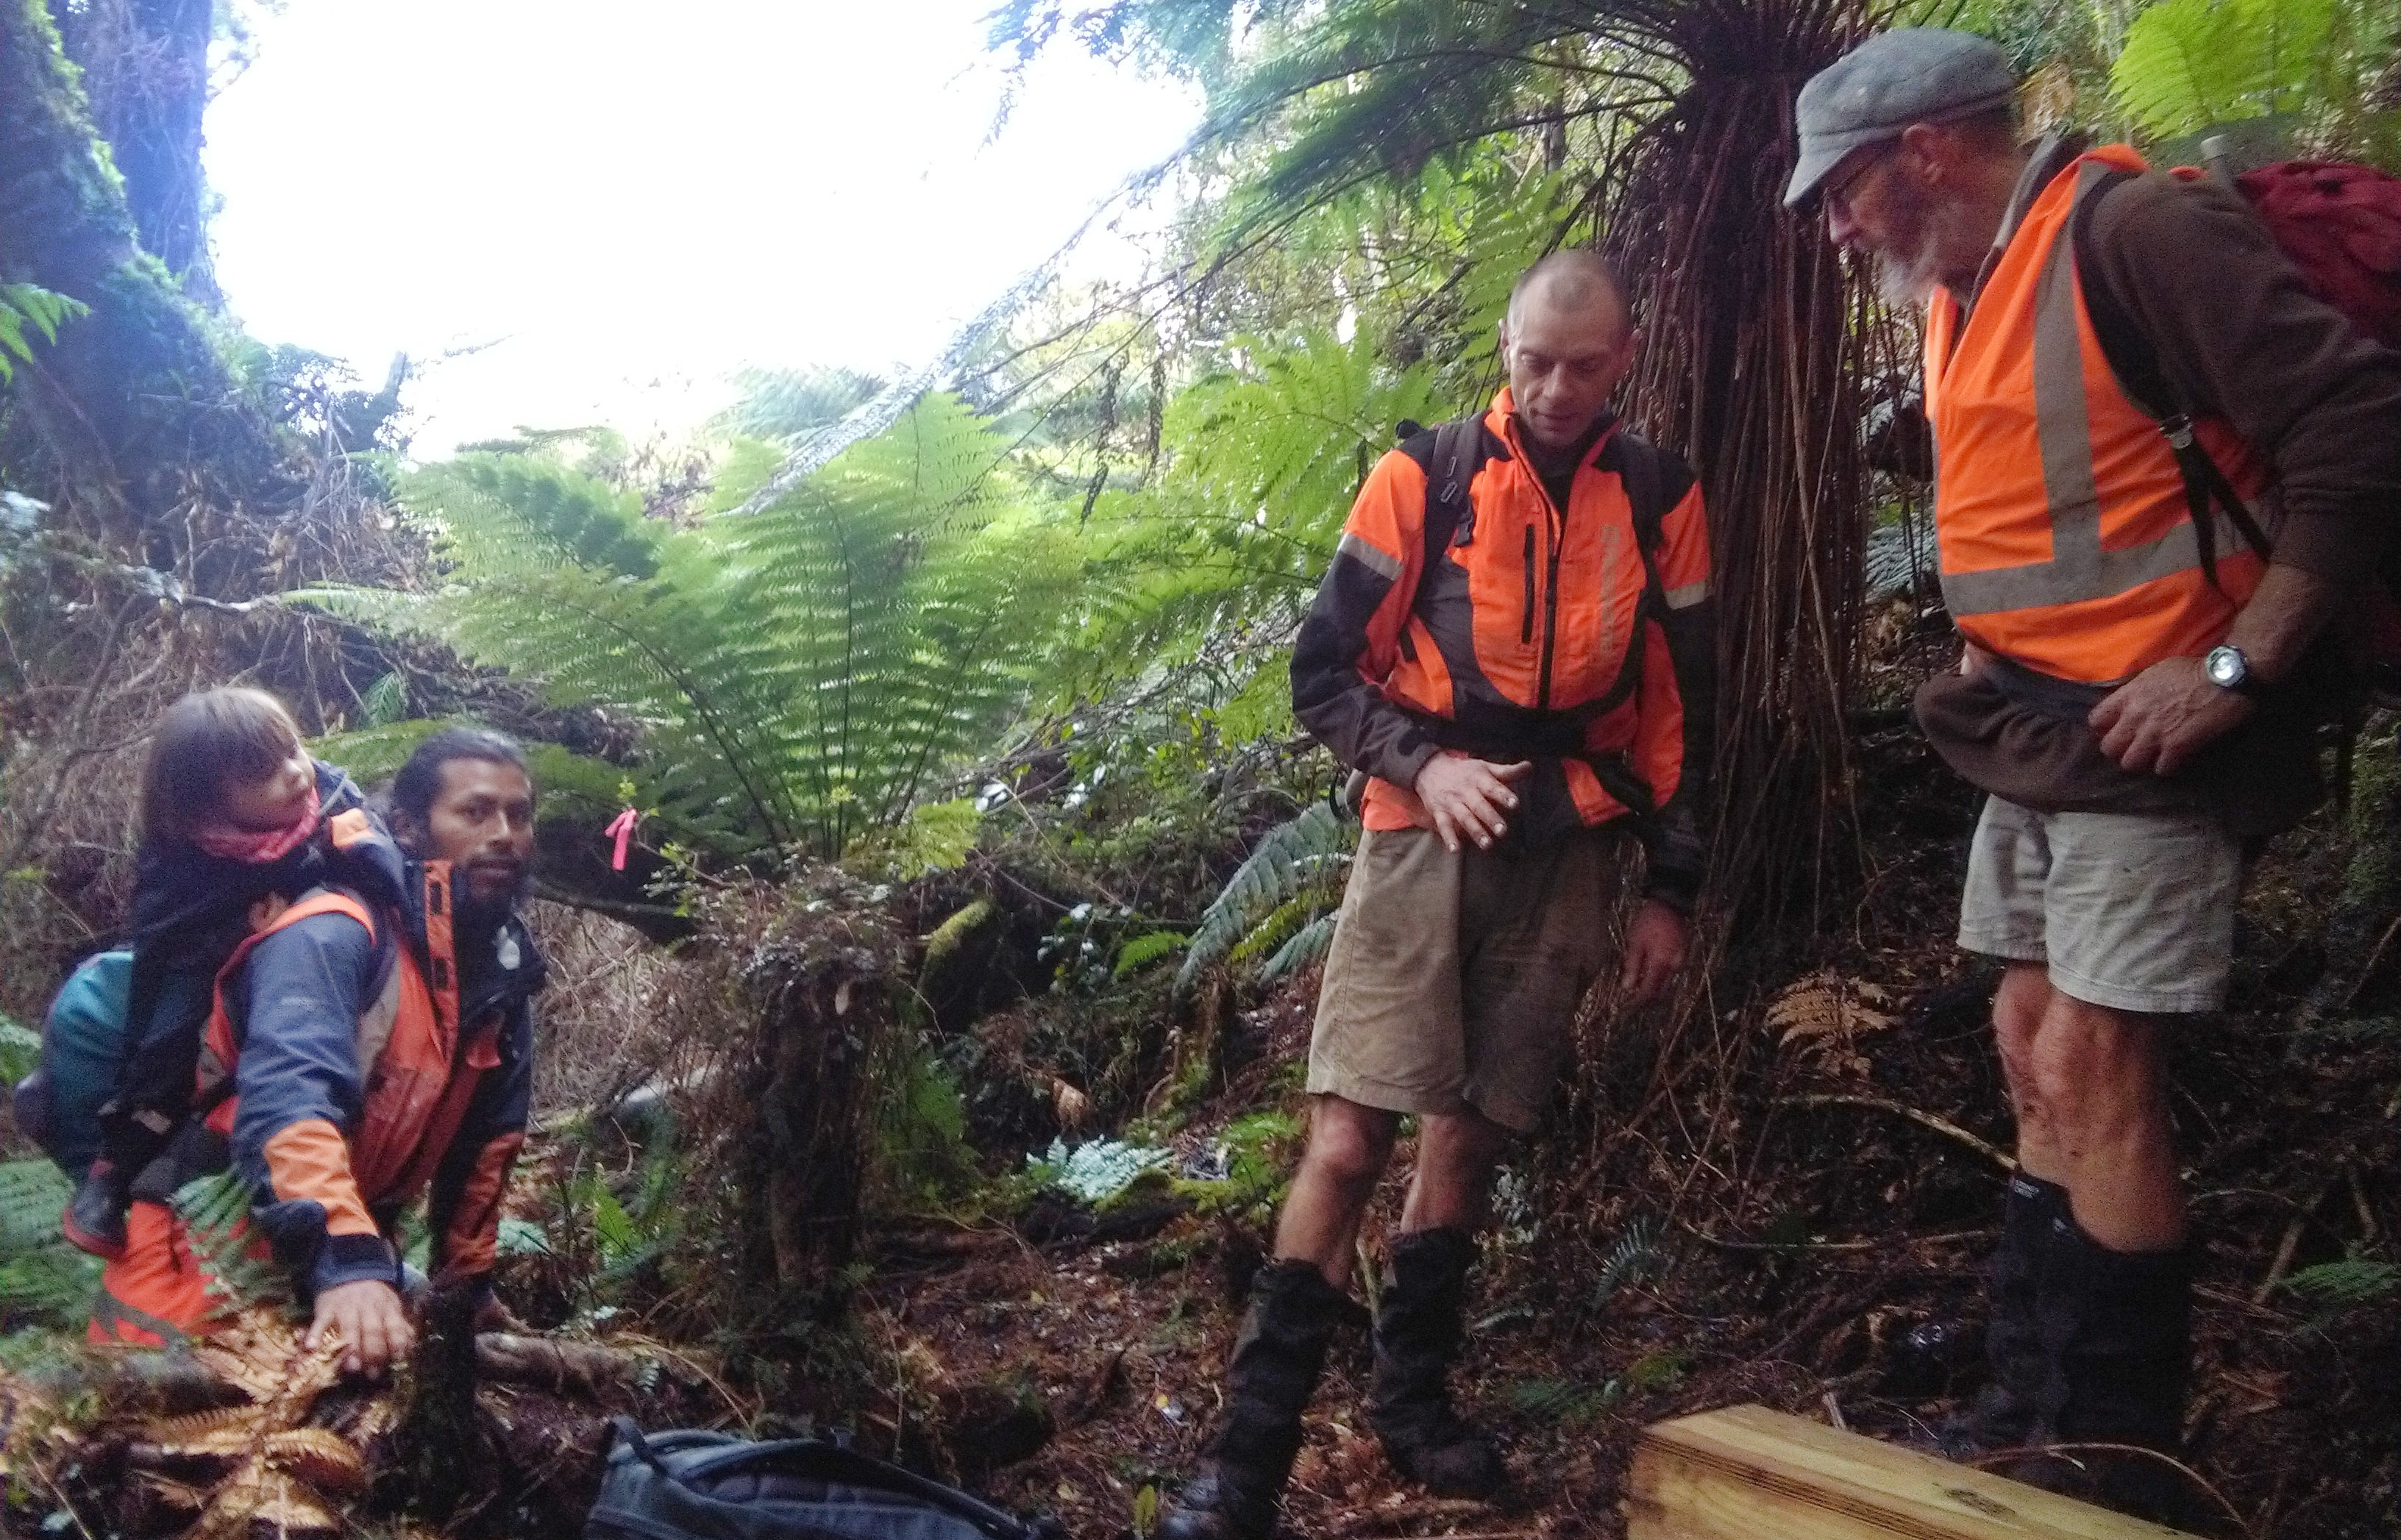 Marking a new trap line in the Tautuku Forest in the Catlins are Tautuku Restoration Project volunteers from left) Jorge Jimenez and son Niko (2), Gavin White. and Roy Johnstone. Photo: Supplied